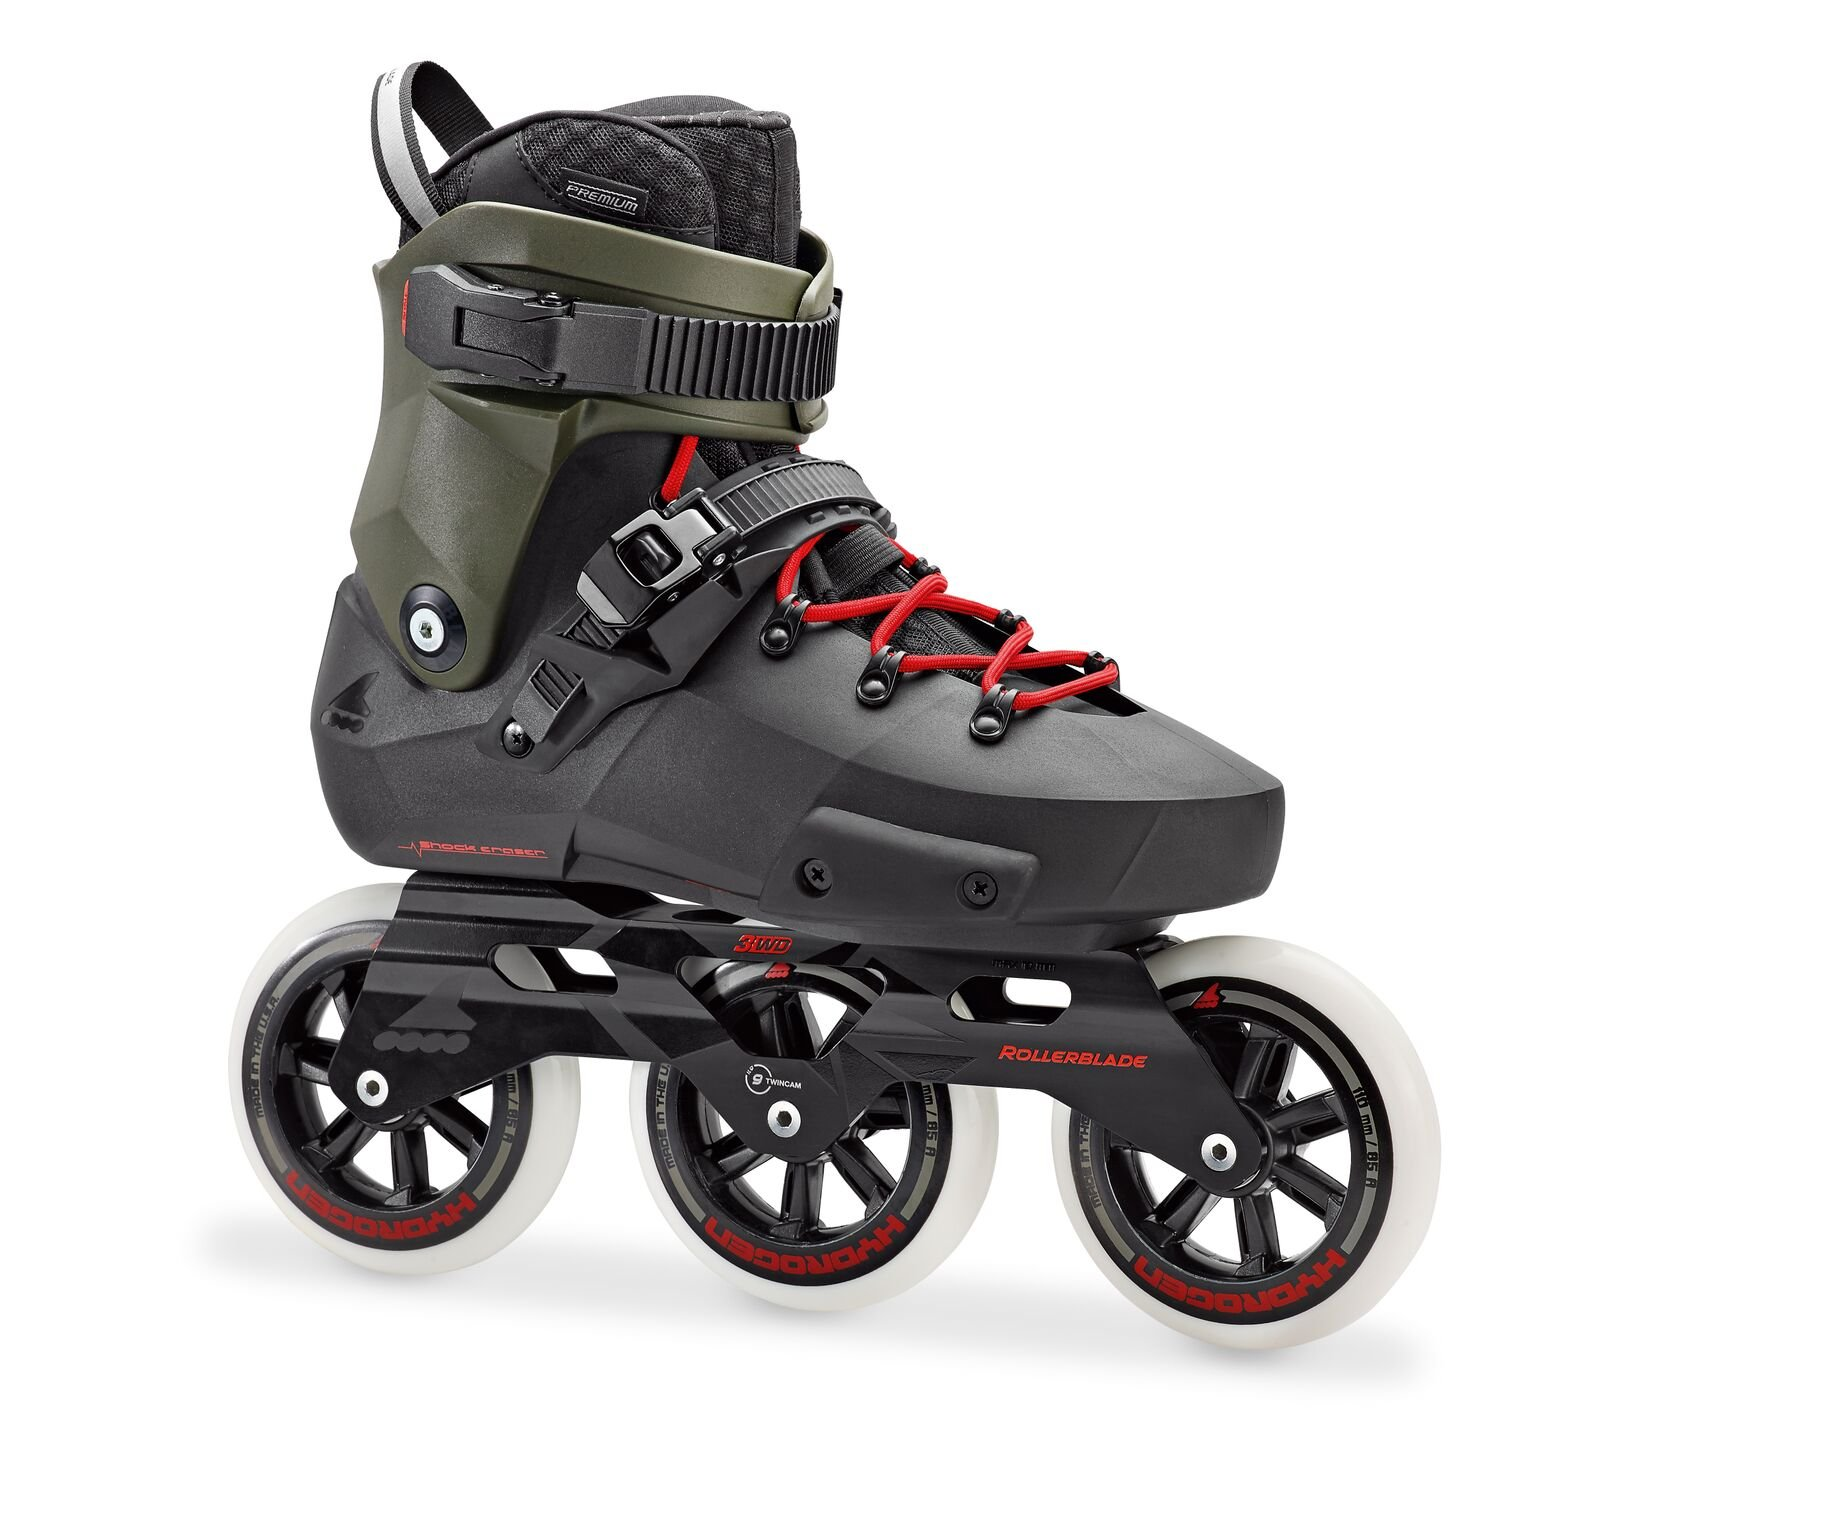 Rollerblade Men's Twister Edge 110 3Wd Fitness Inline Skate, Black/Army Green, Size 9 by Rollerblade